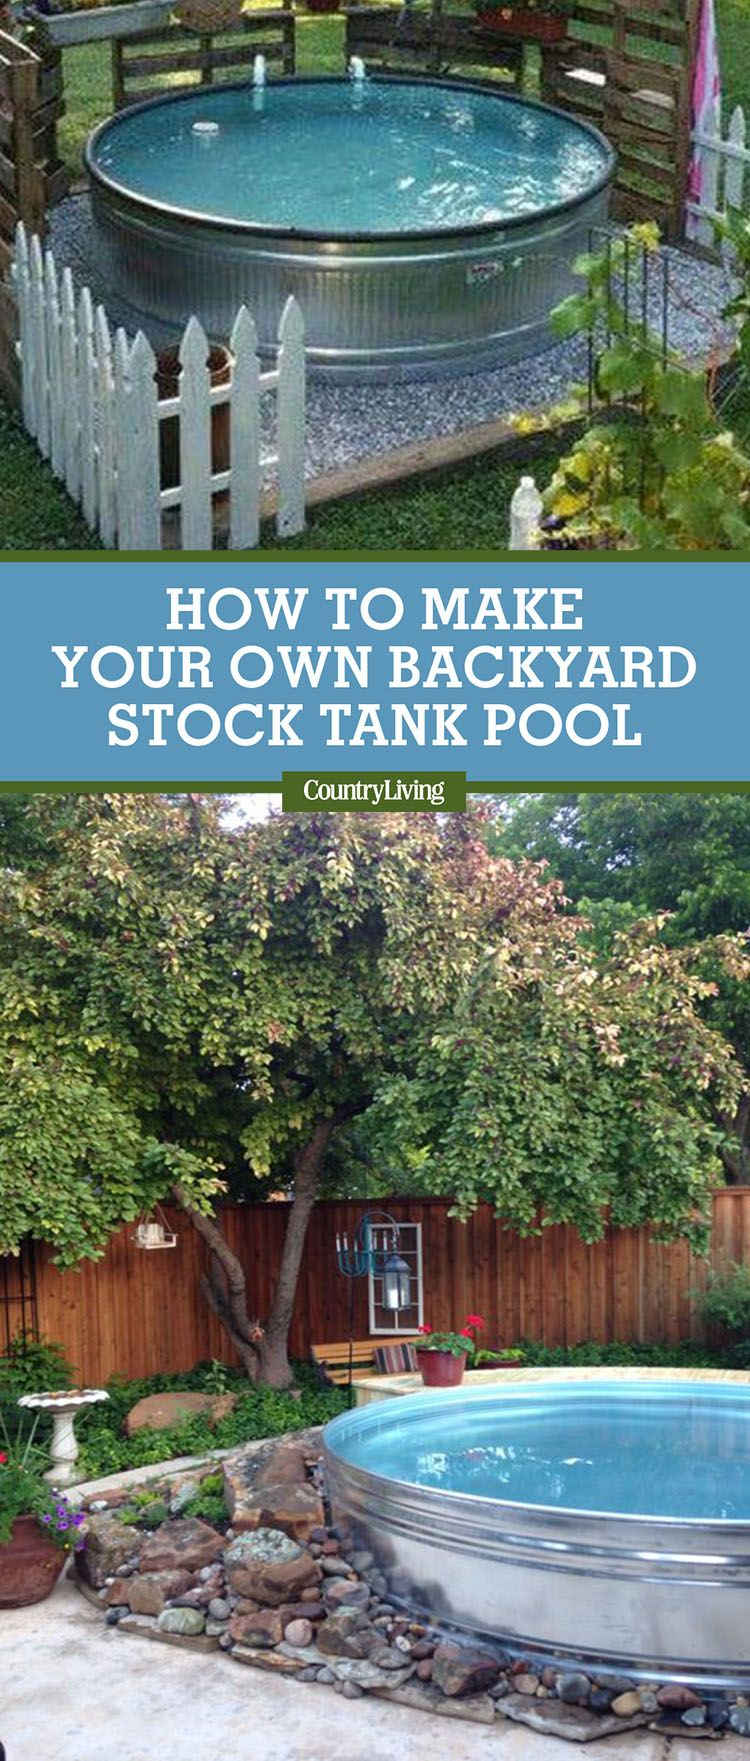 Gartengestaltung Ideen Bilder Mit Pool Stock Tank Pools Are Going To Be More Popular Than Ever This